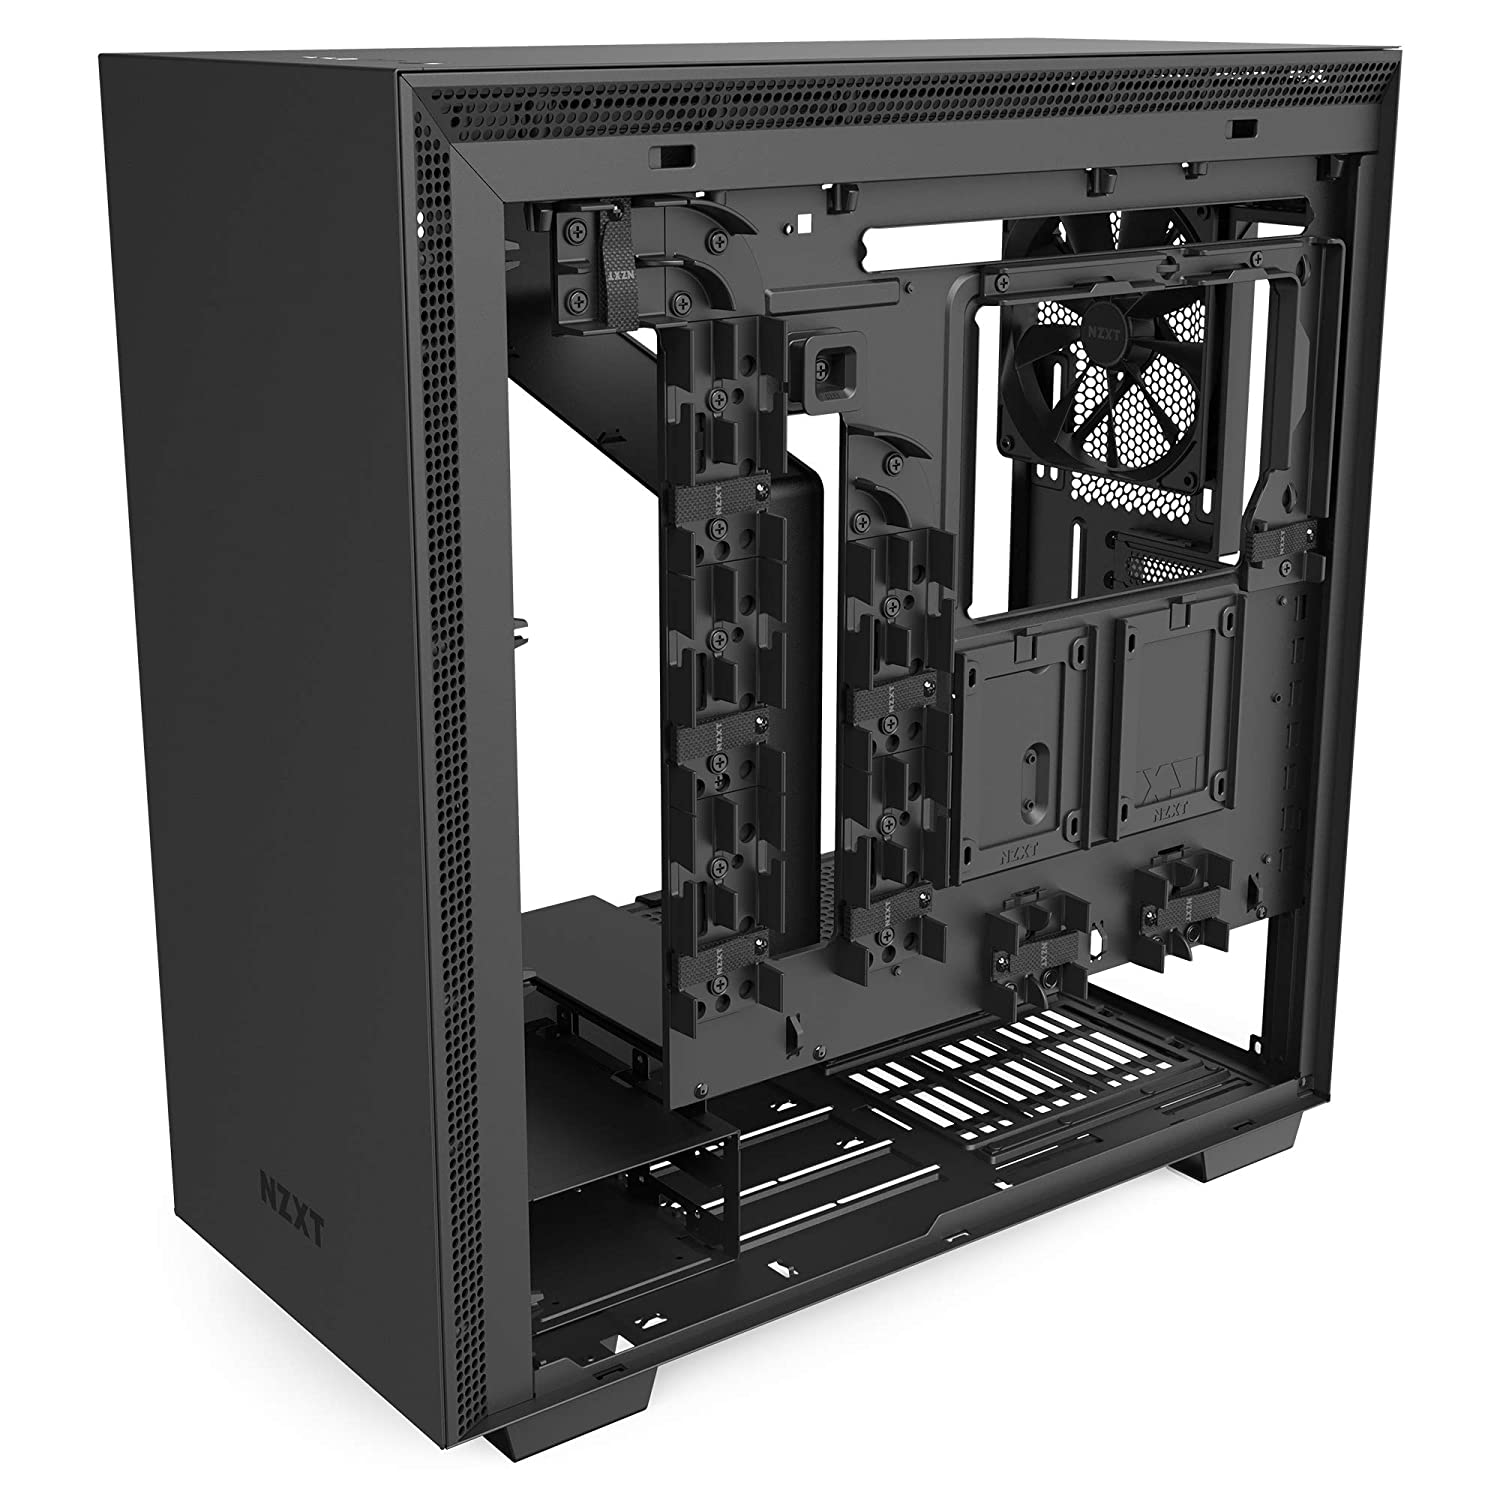 Water-Cooling Ready NZXT H210 Front I//O USB Type-C Port Mini-ITX PC Gaming Case Steel Construction White//Black Tempered Glass Side Panel Radiator Bracket Cable Management System